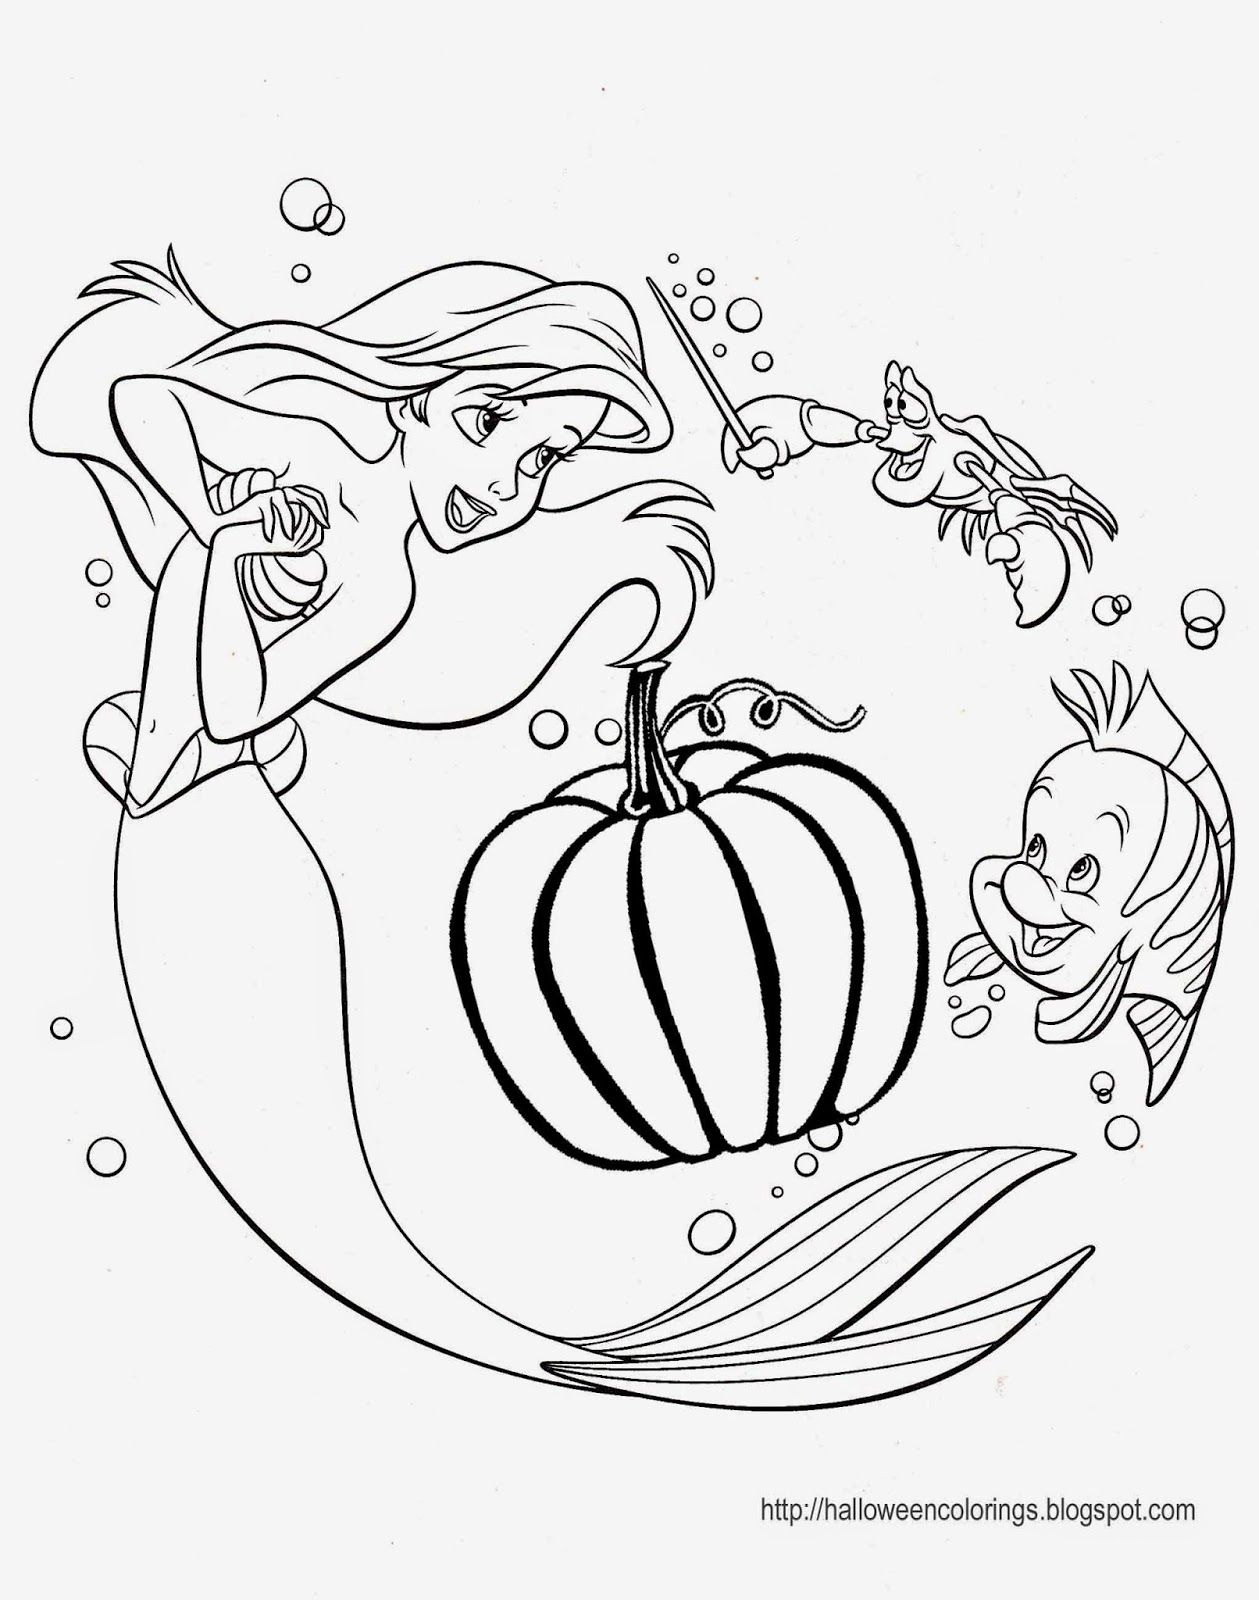 Disney Princesses Halloween Coloring Pages Cinderella Coloring Pages Halloween Coloring Pages Princess Coloring Pages